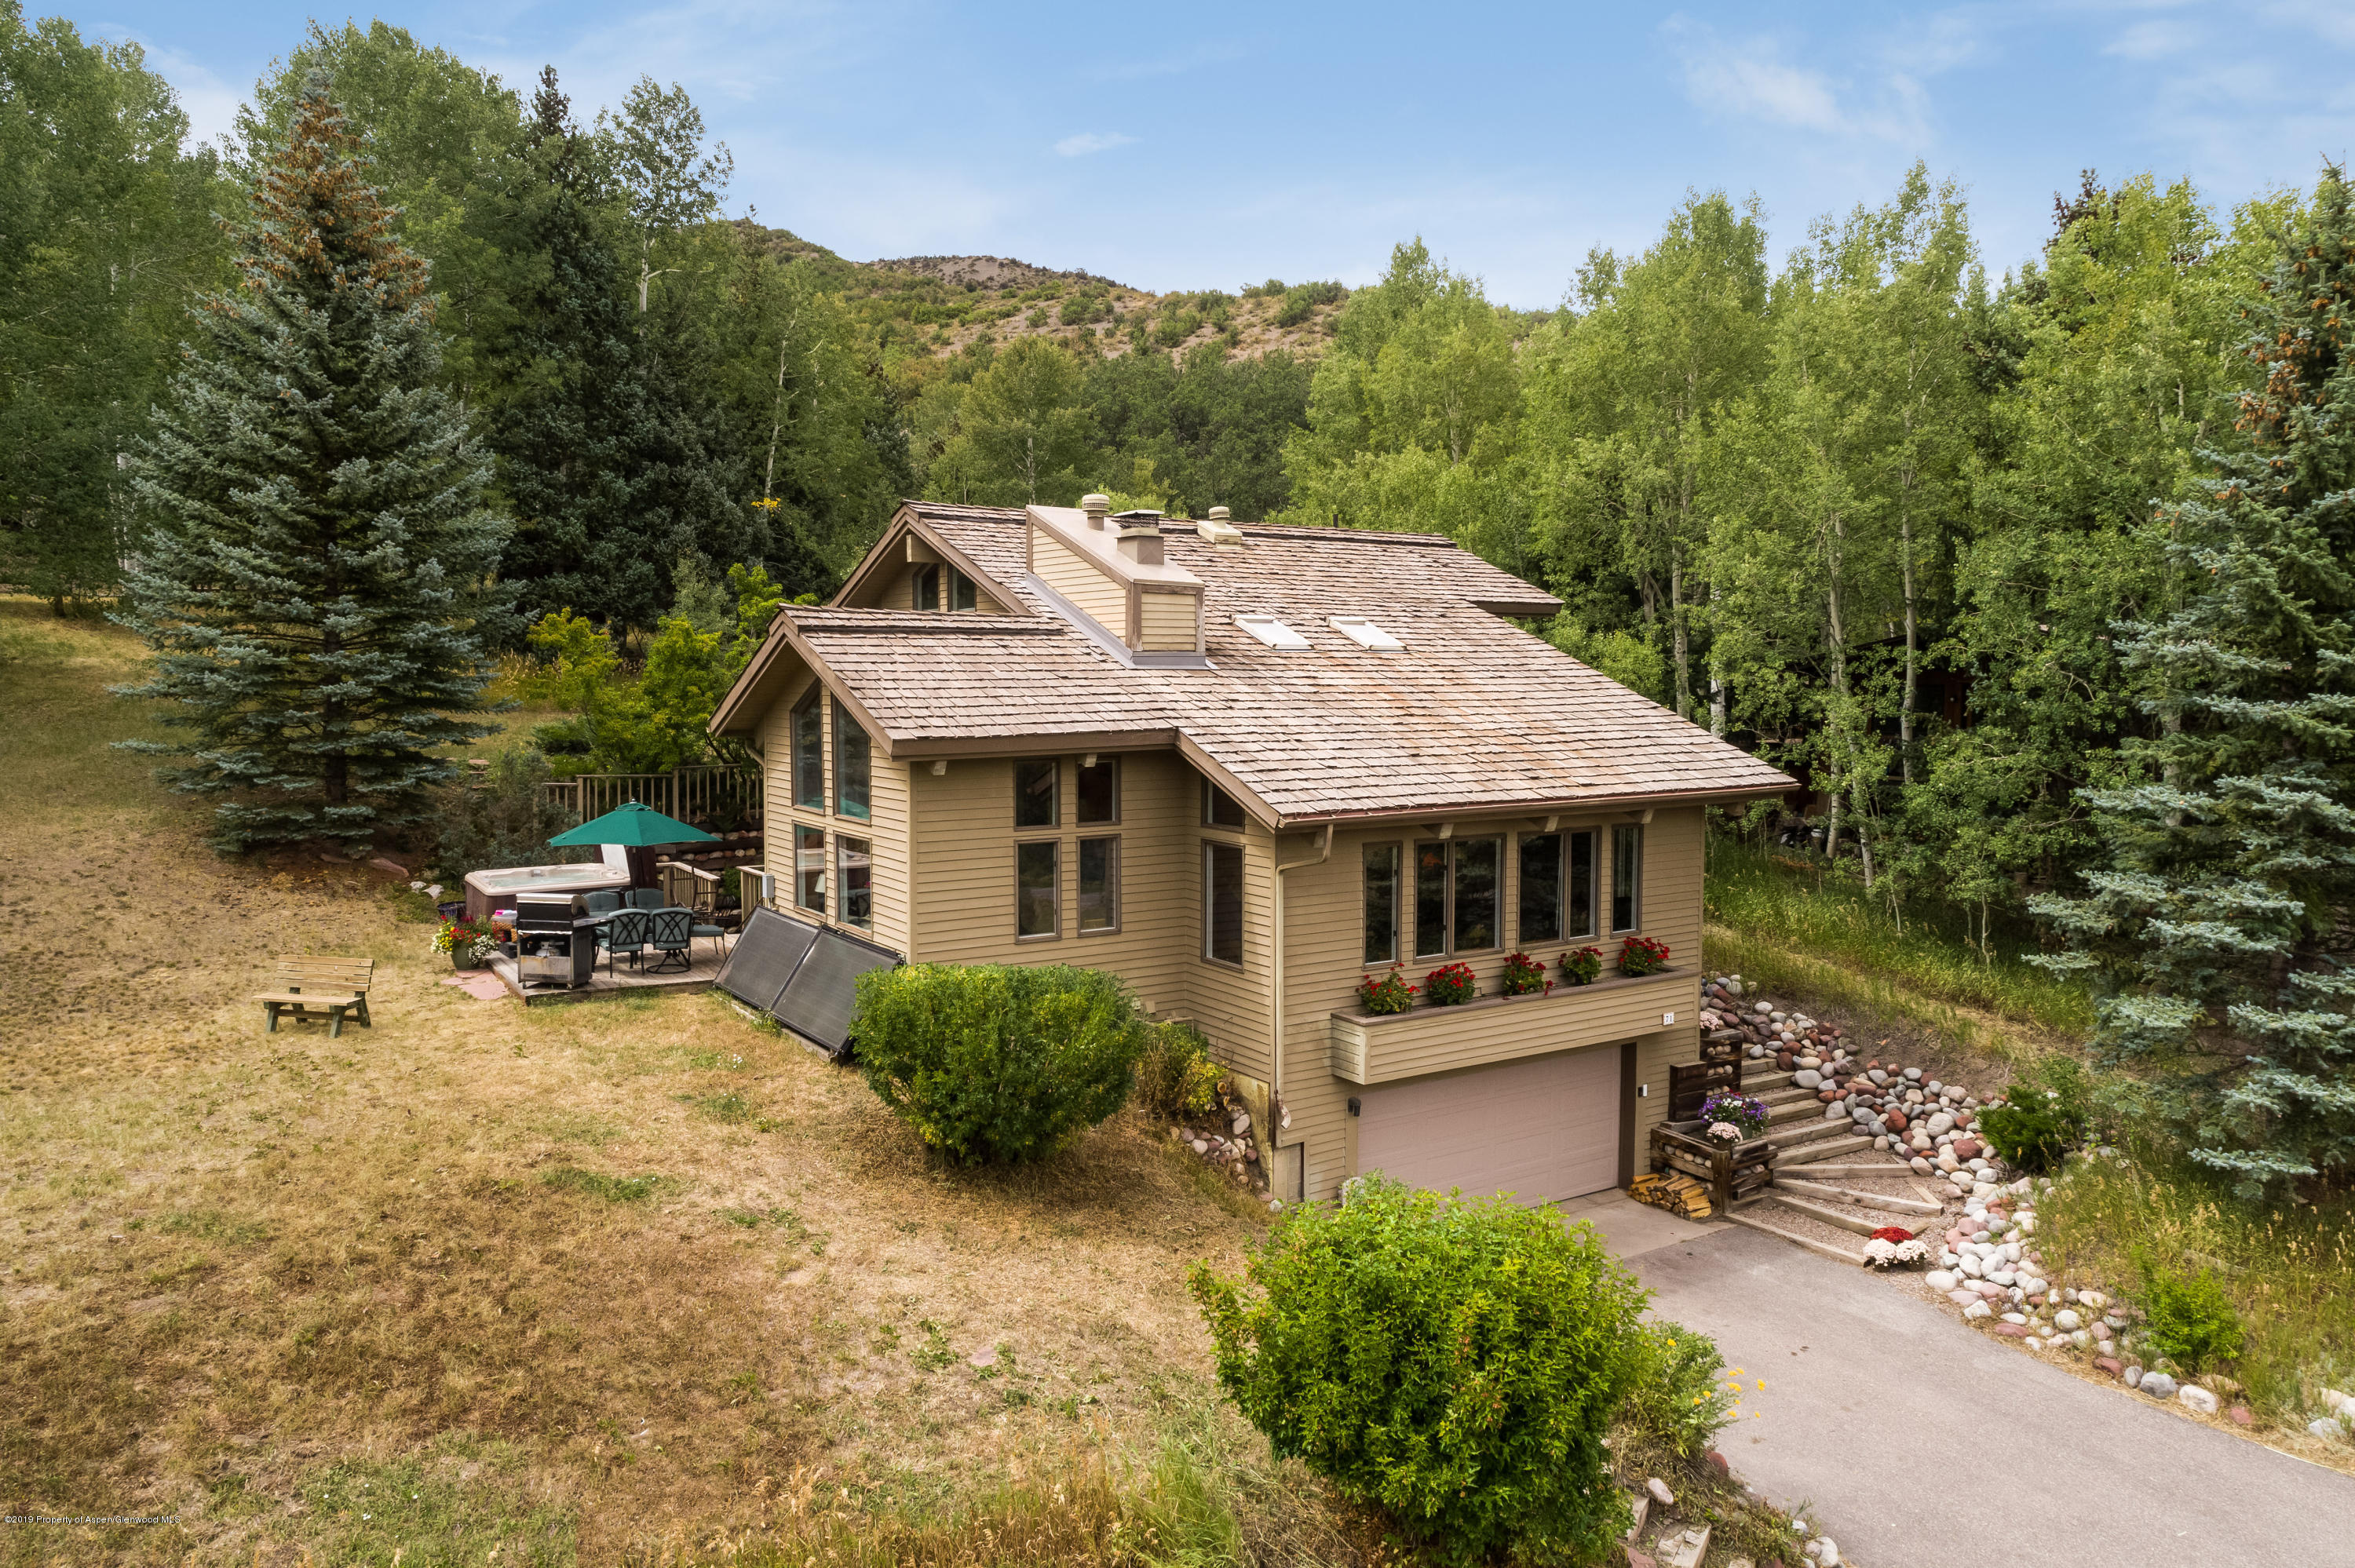 71 Terrace Drive - Snowmass Village, Colorado